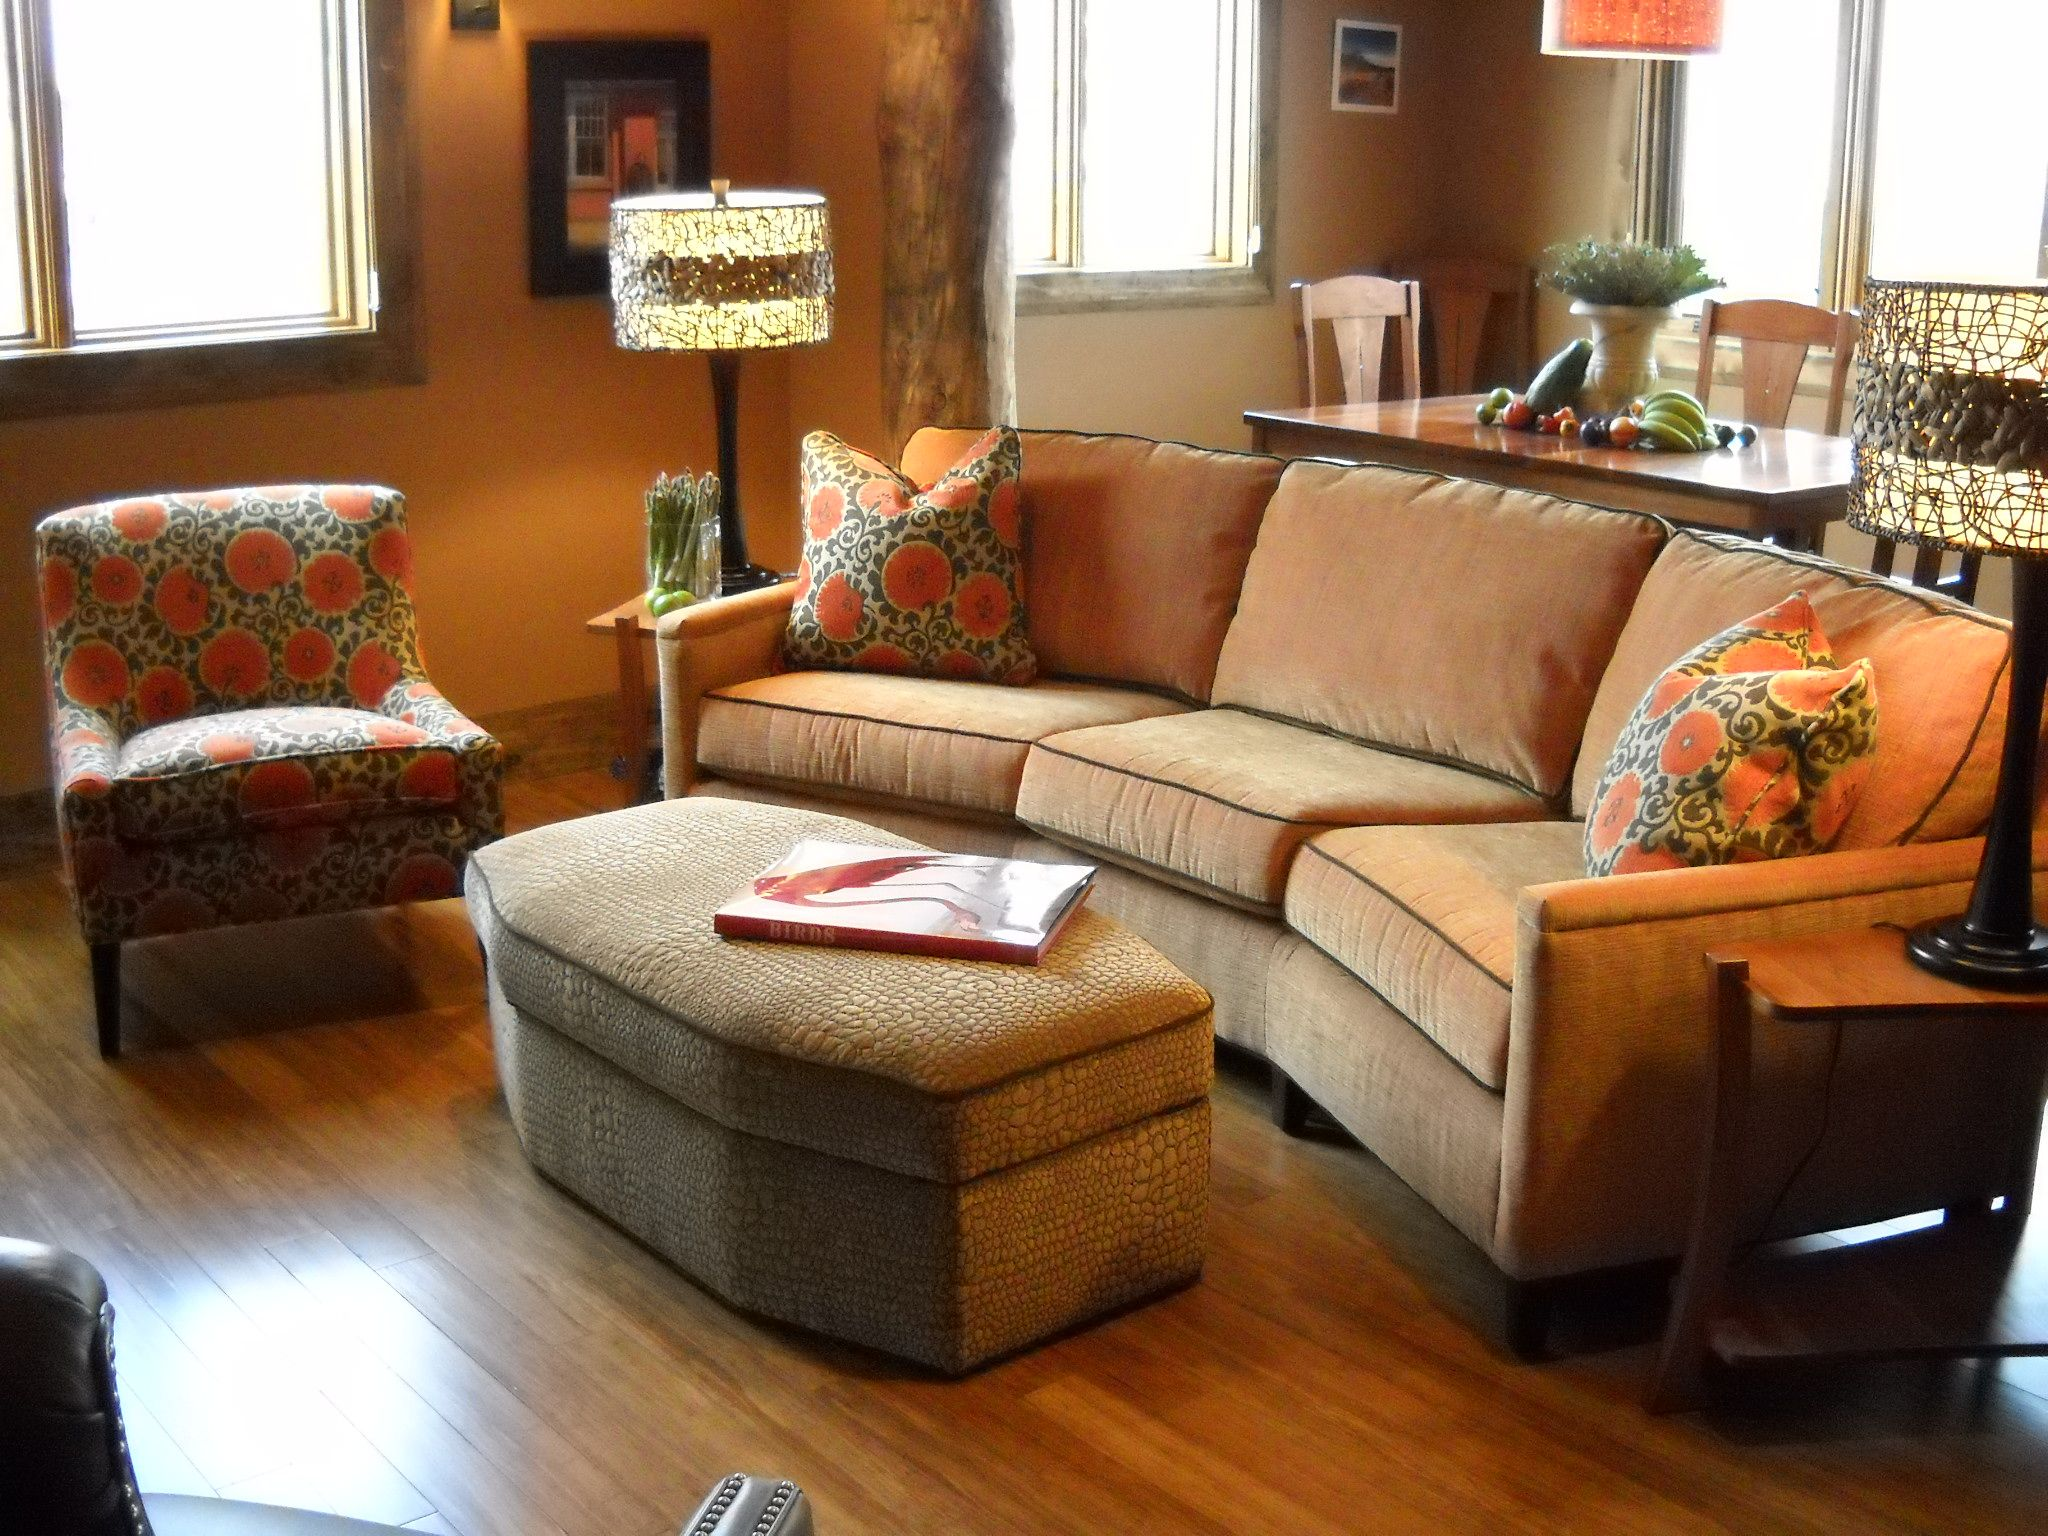 Norwalk Easton Sofa | Norwalk Furniture | Pinterest ...